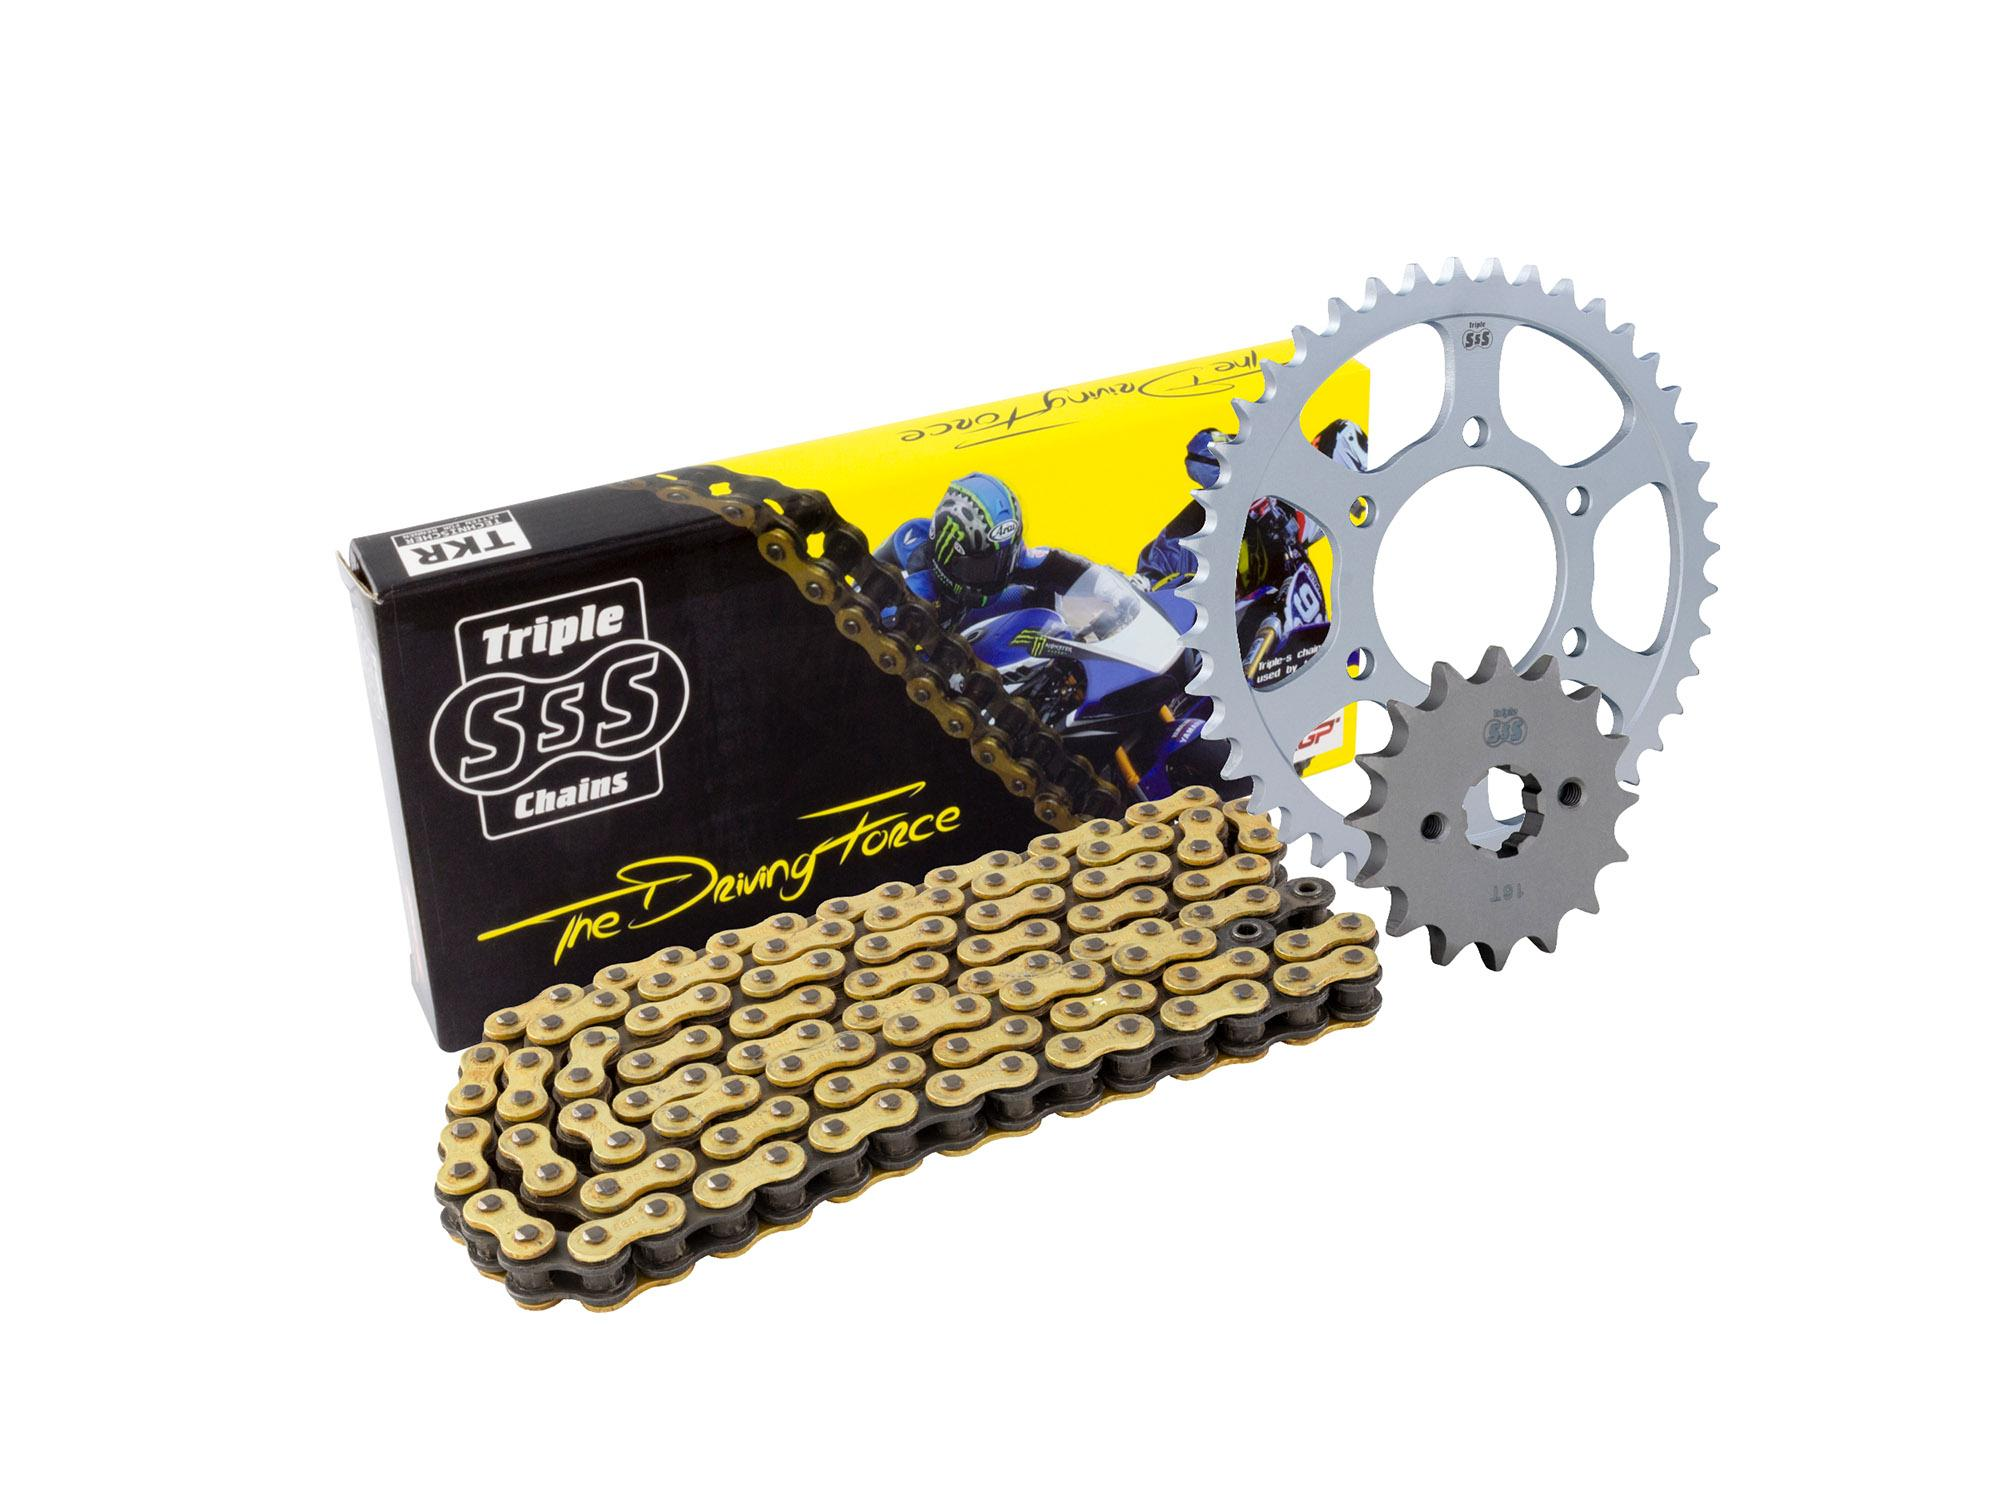 Triumph 1050 Speed Triple 12-15, 1050 Speed Triple R 12-16 Chain & Sprocket Kit: 18T Front, 43T Rear, HD O-Ring Gold Chain 530H 108 Link